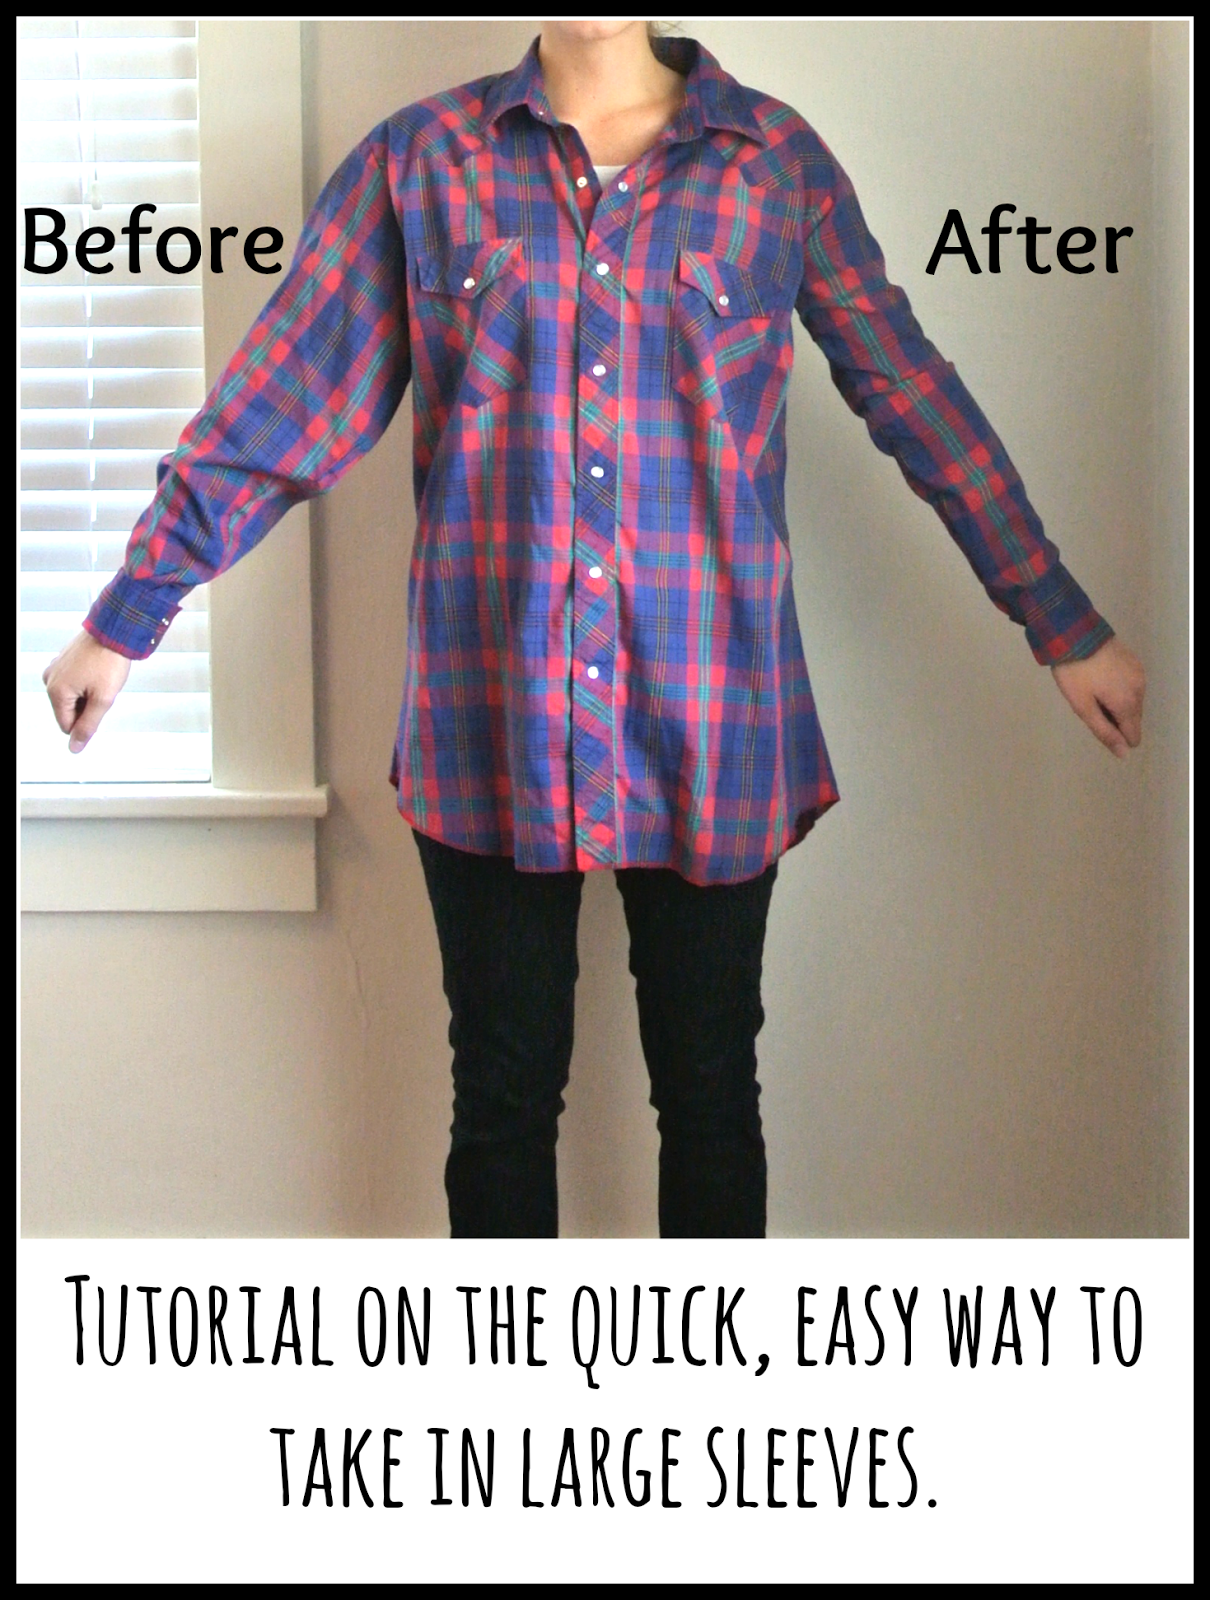 Tutorial on how to take in sleeves quickly and easily